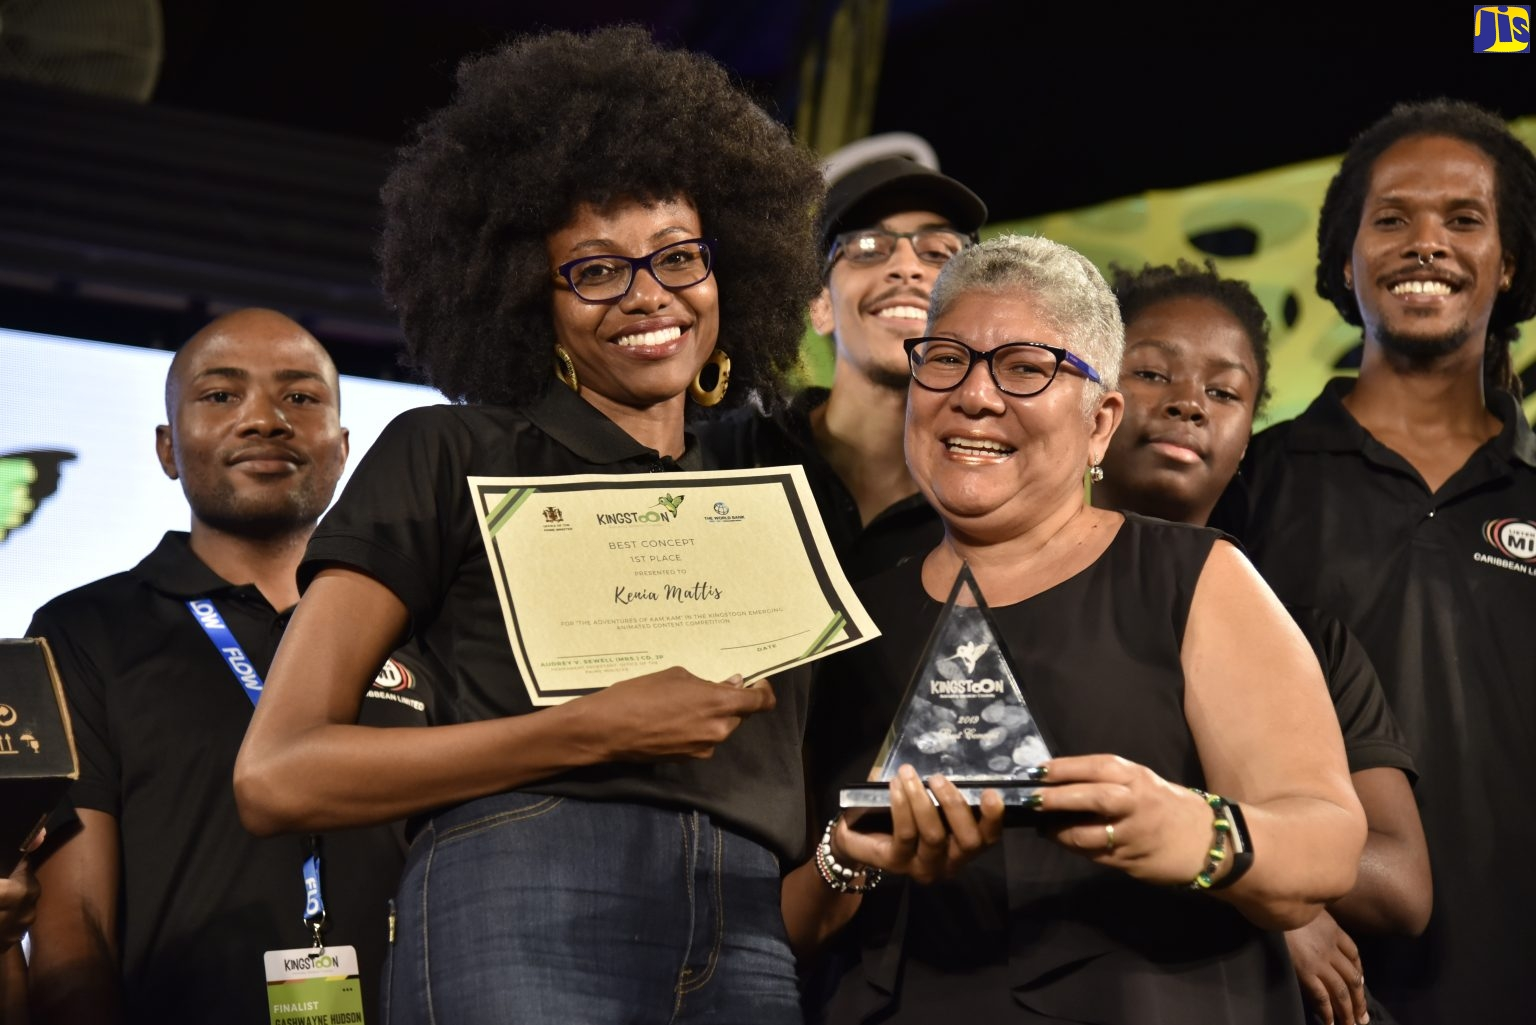 The Adventures Of Kam Kam' Wins Best Pitch at KingstOOn - Jamaica